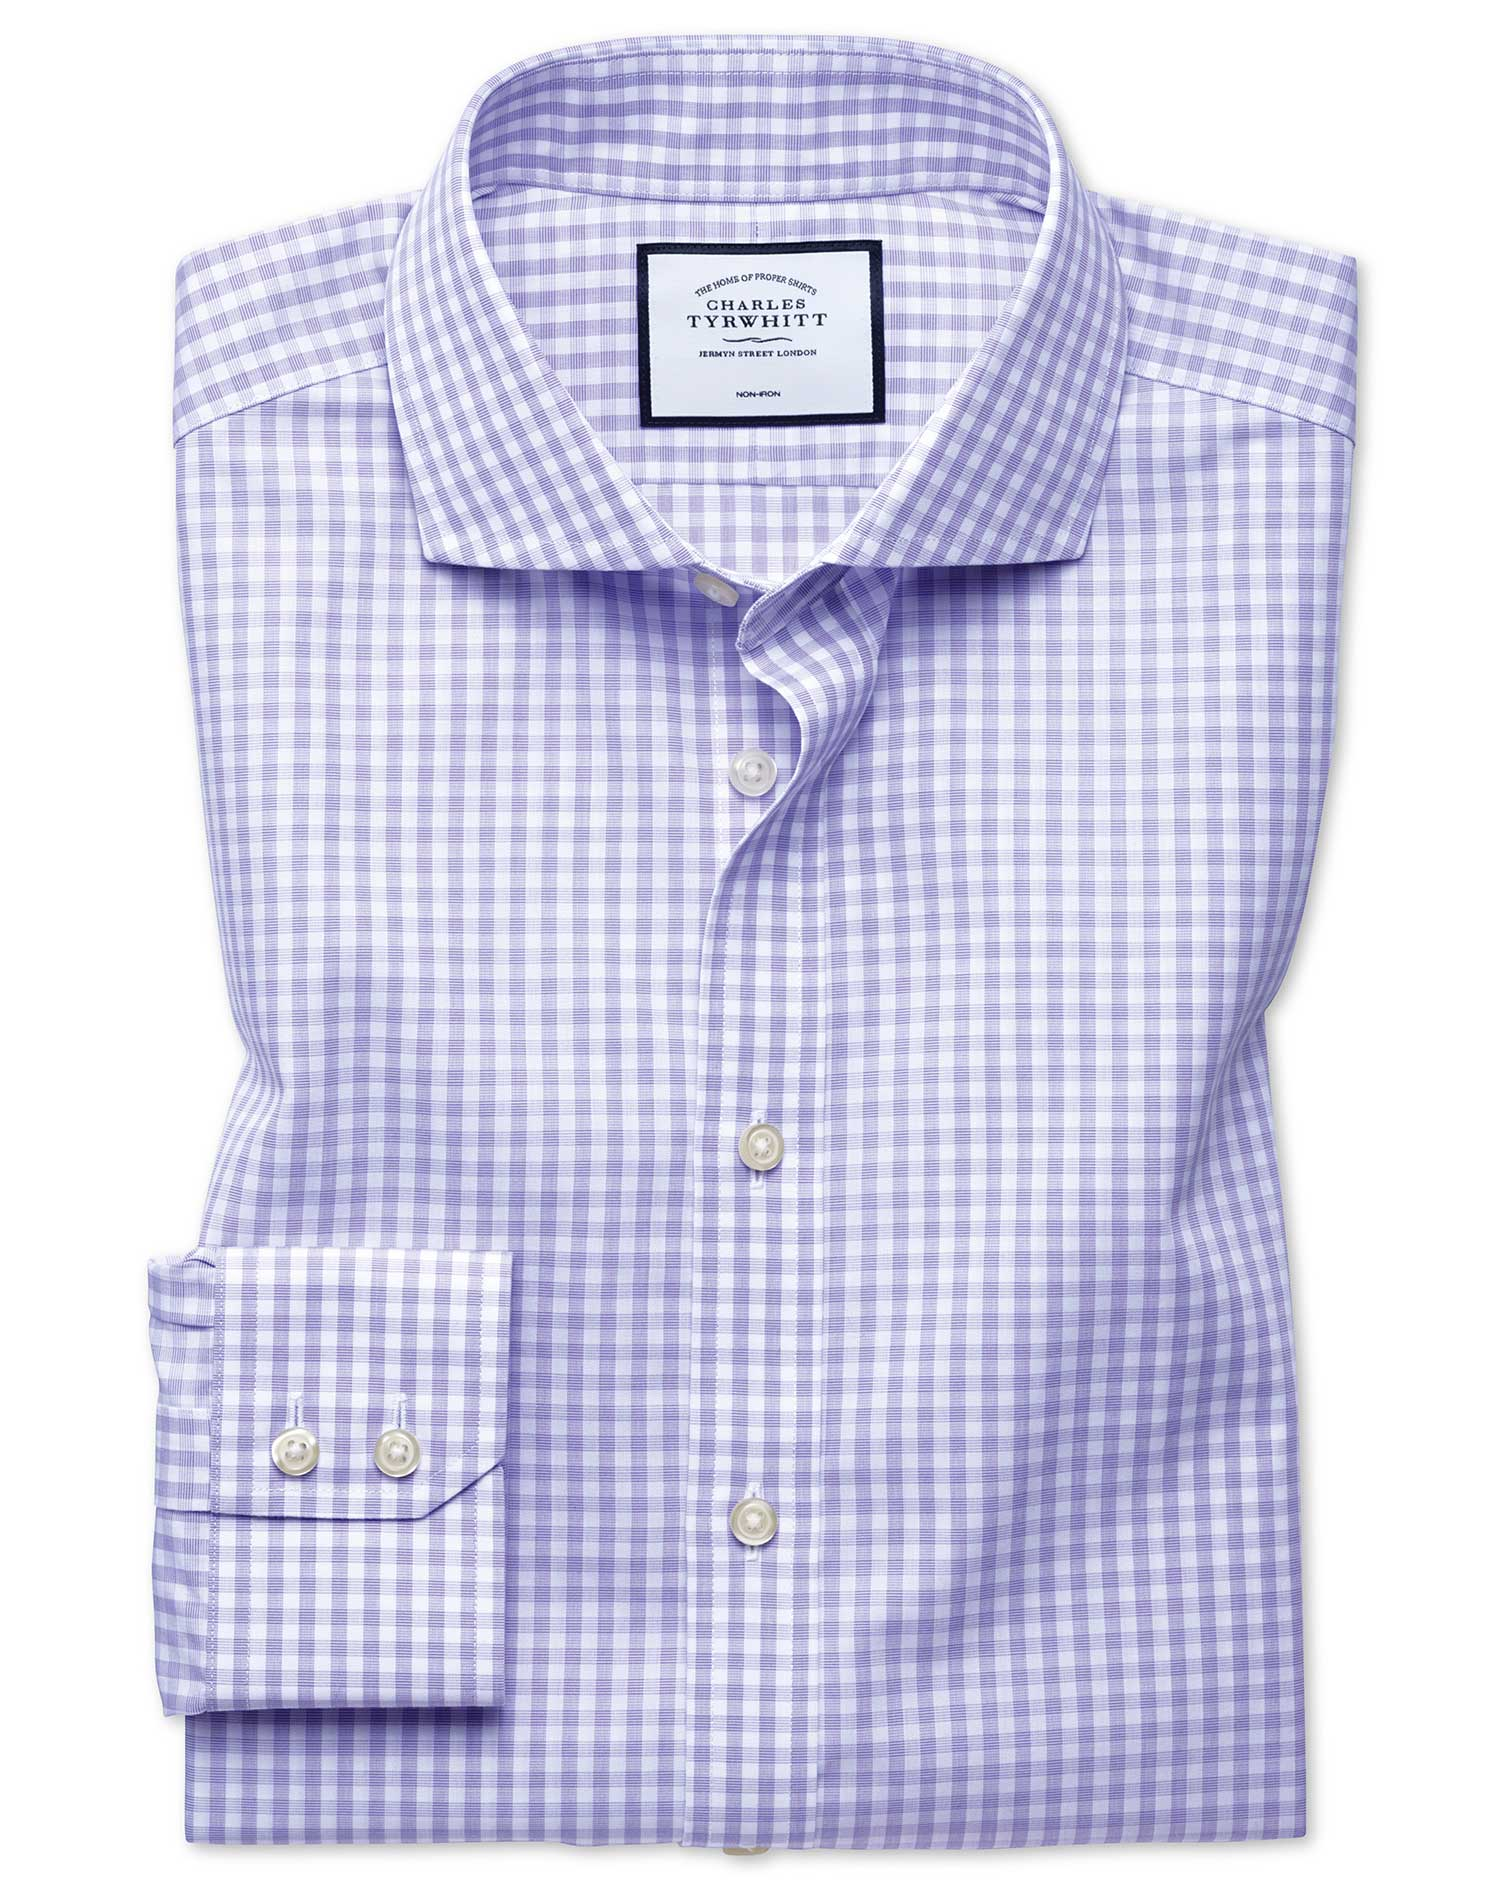 Classic Fit Non-Iron Purple Check Tyrwhitt Cool Cotton Formal Shirt Single Cuff Size 15.5/34 by Char